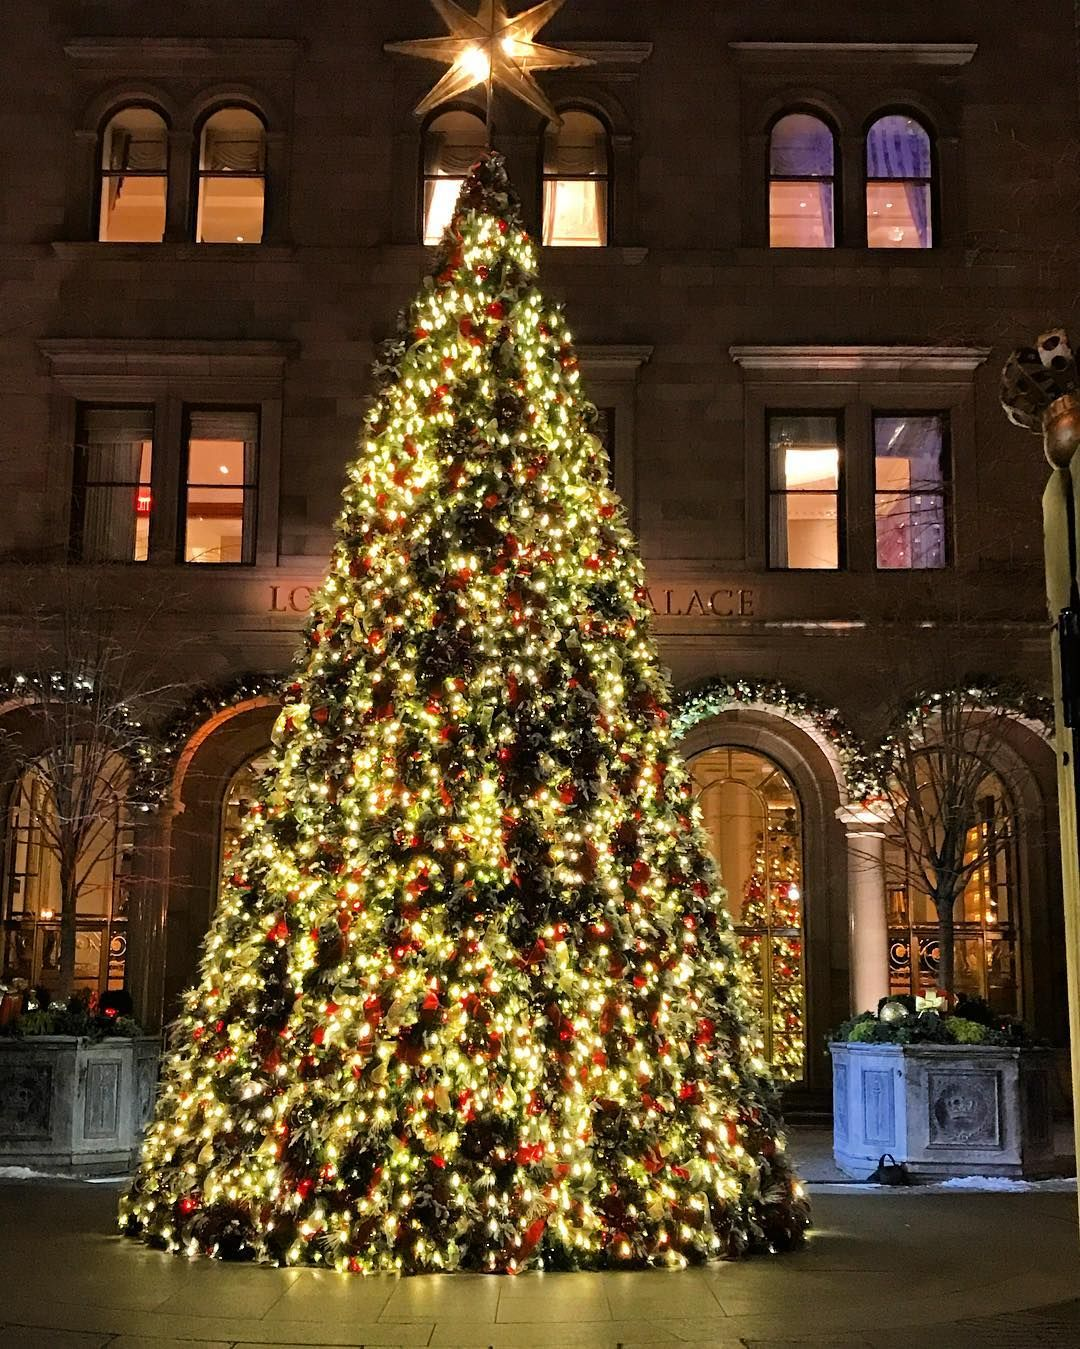 #Fbf to one last Christmas tree in the courtyard of The Villard Mansion designed by the premiere ...